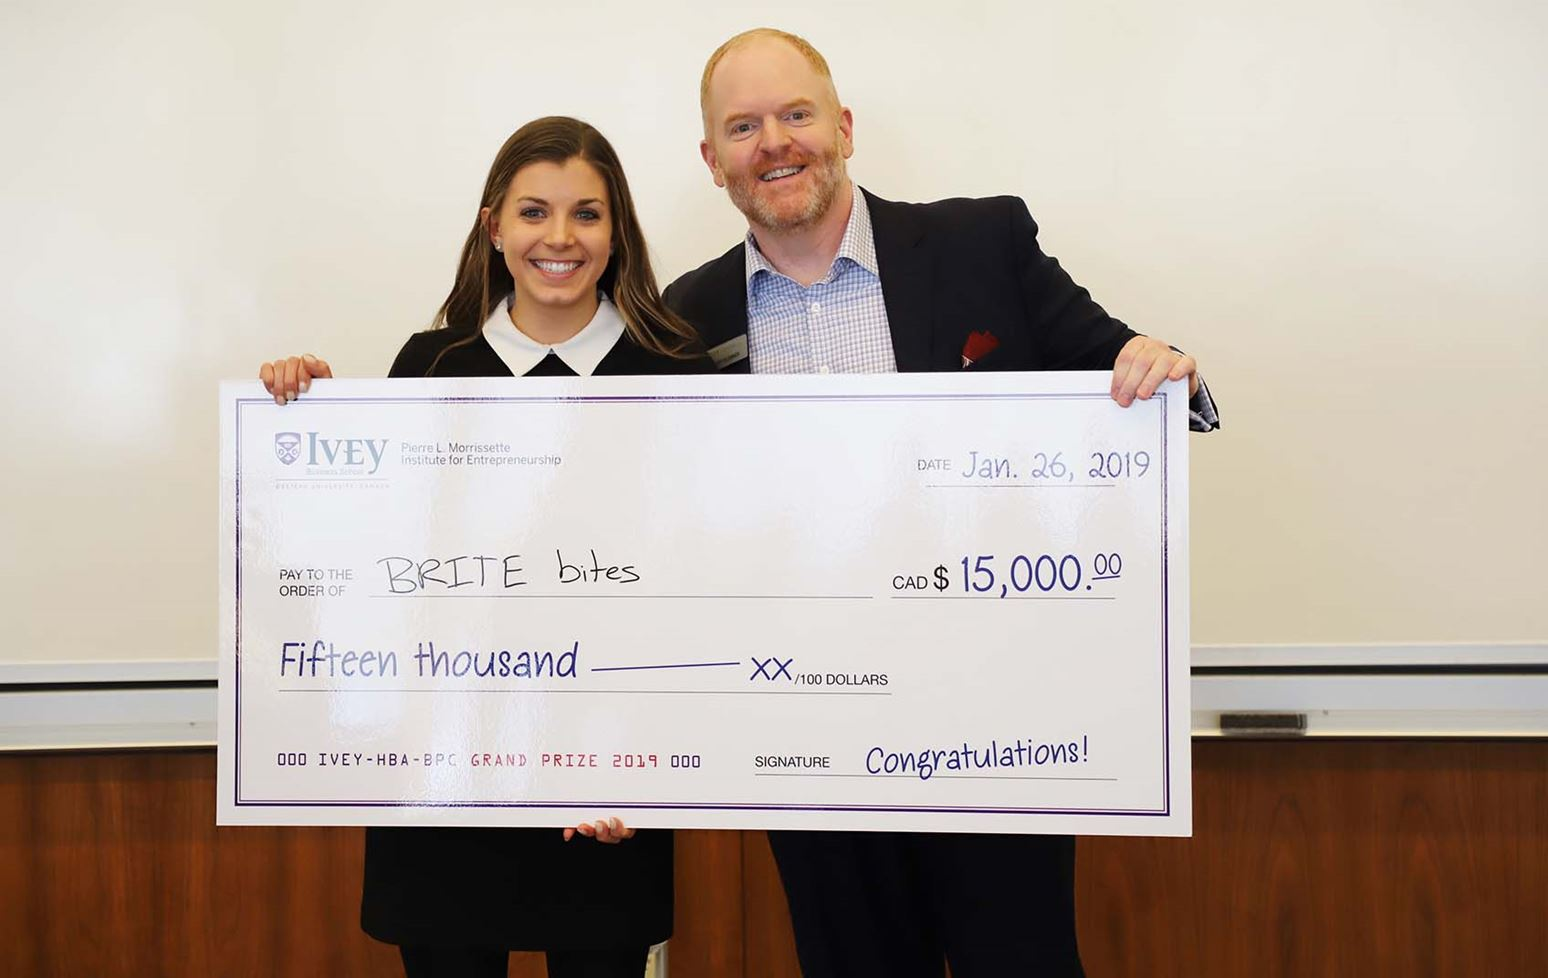 Big ideas: 2019 Ivey Business Plan Competition